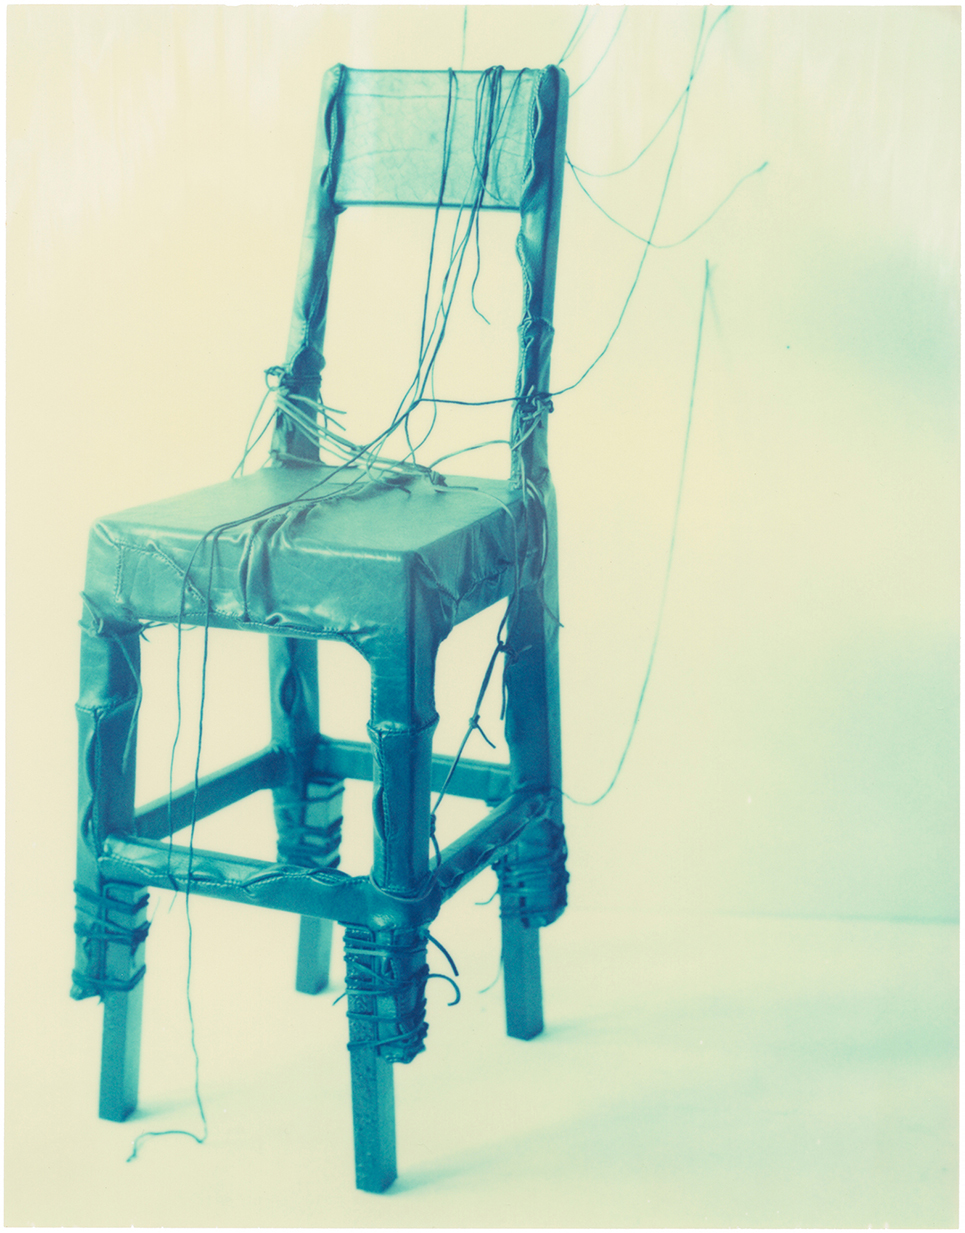 """Photograph from the series titled """"Nothing But Words To Learn To Lie"""" by Kotsuhiroi 2012 ©"""